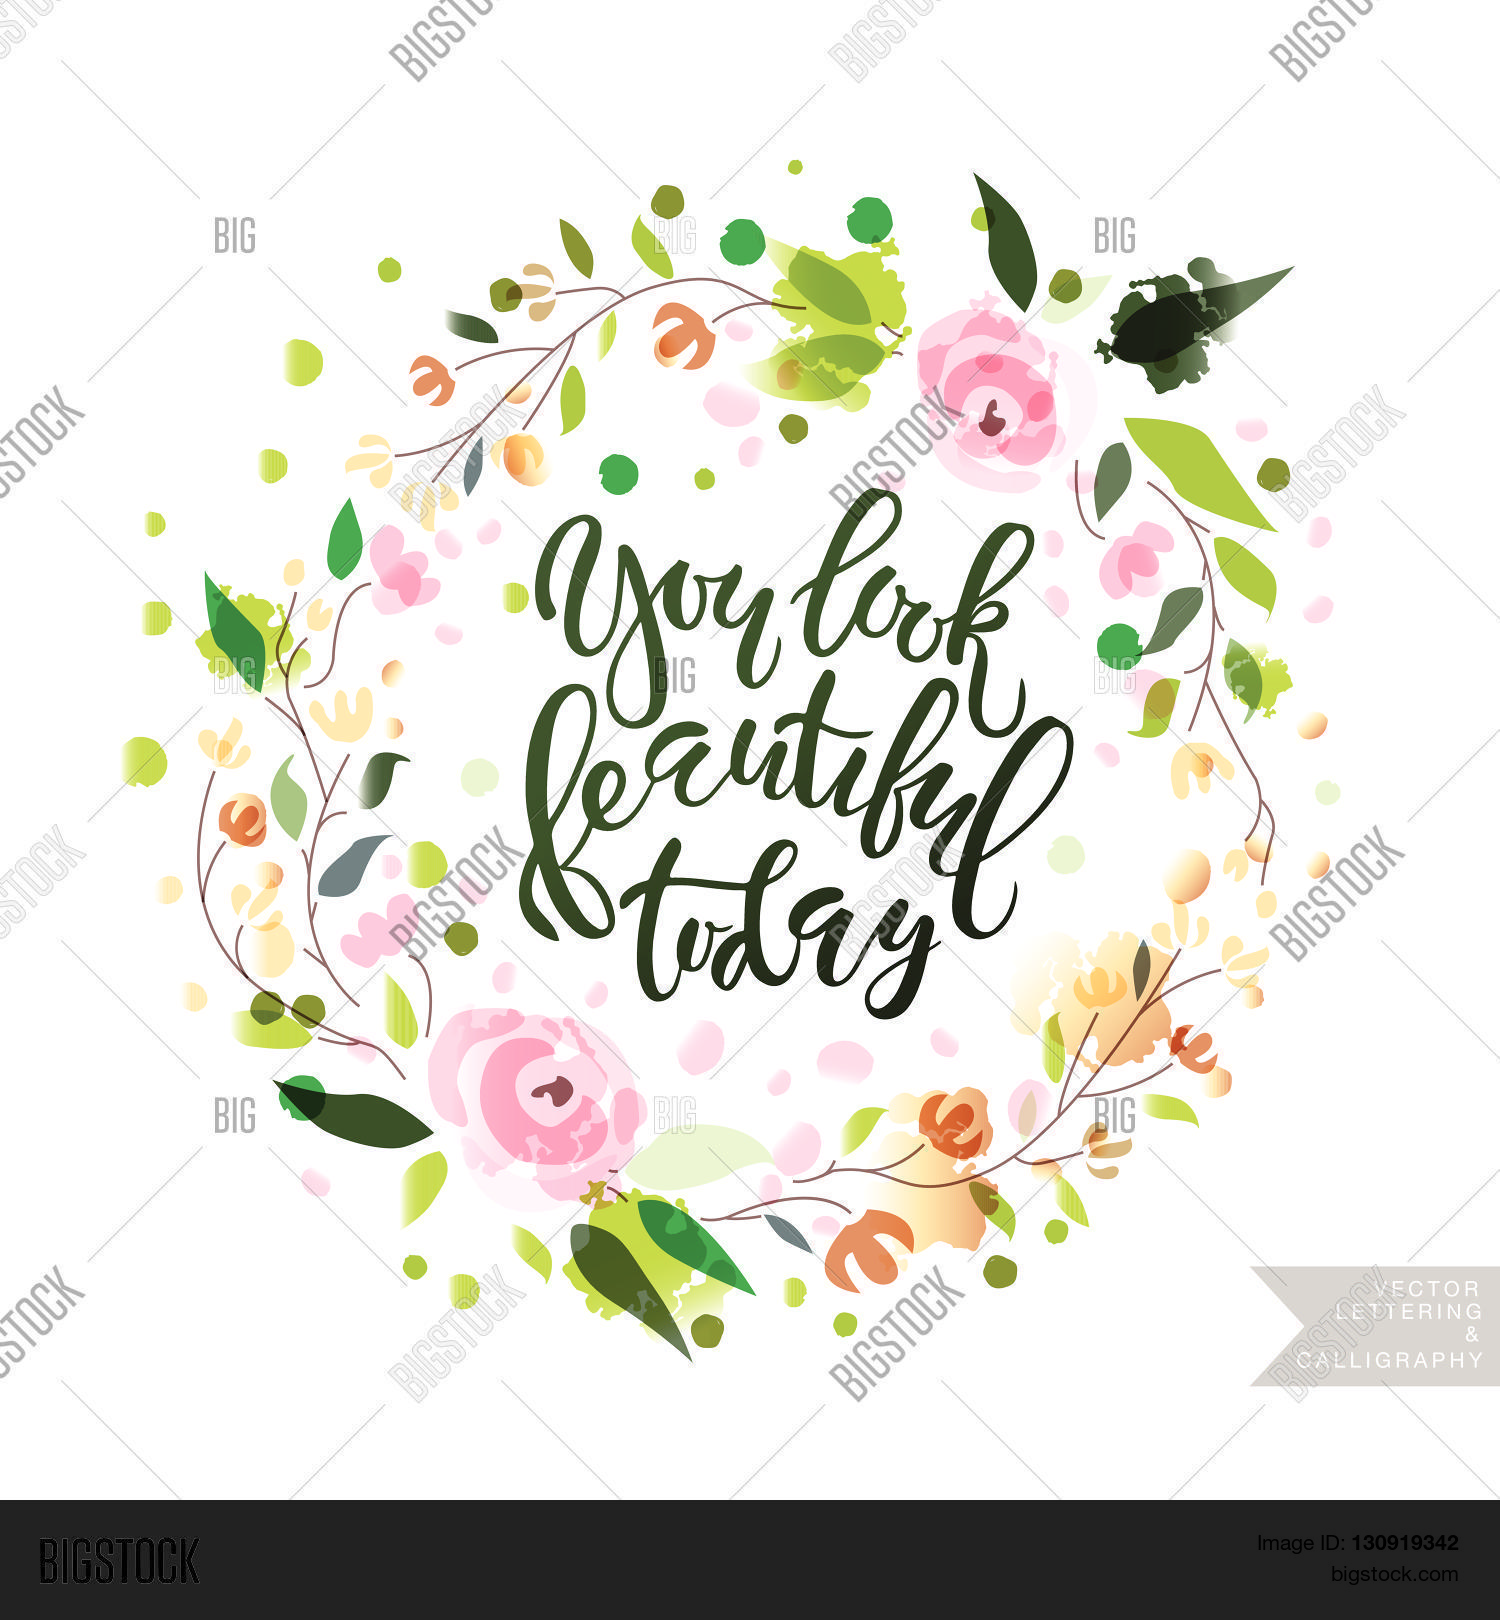 Inspirational Quote 'you Look Beautiful Today'. Stock Vector.